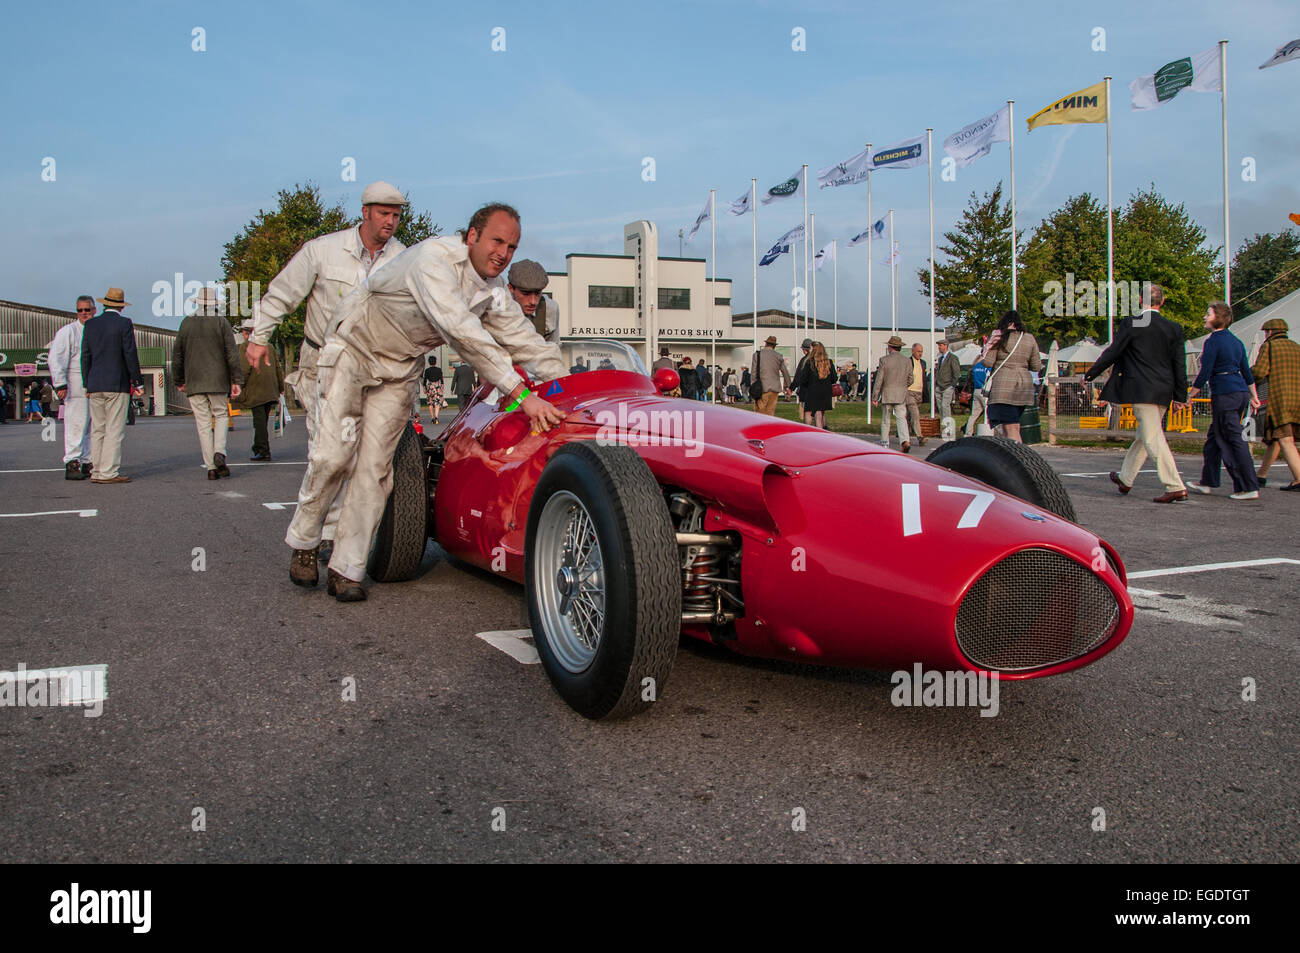 the-maserati-250f-was-a-racing-car-made-by-maserati-of-italy-used-EGDTGT.jpg